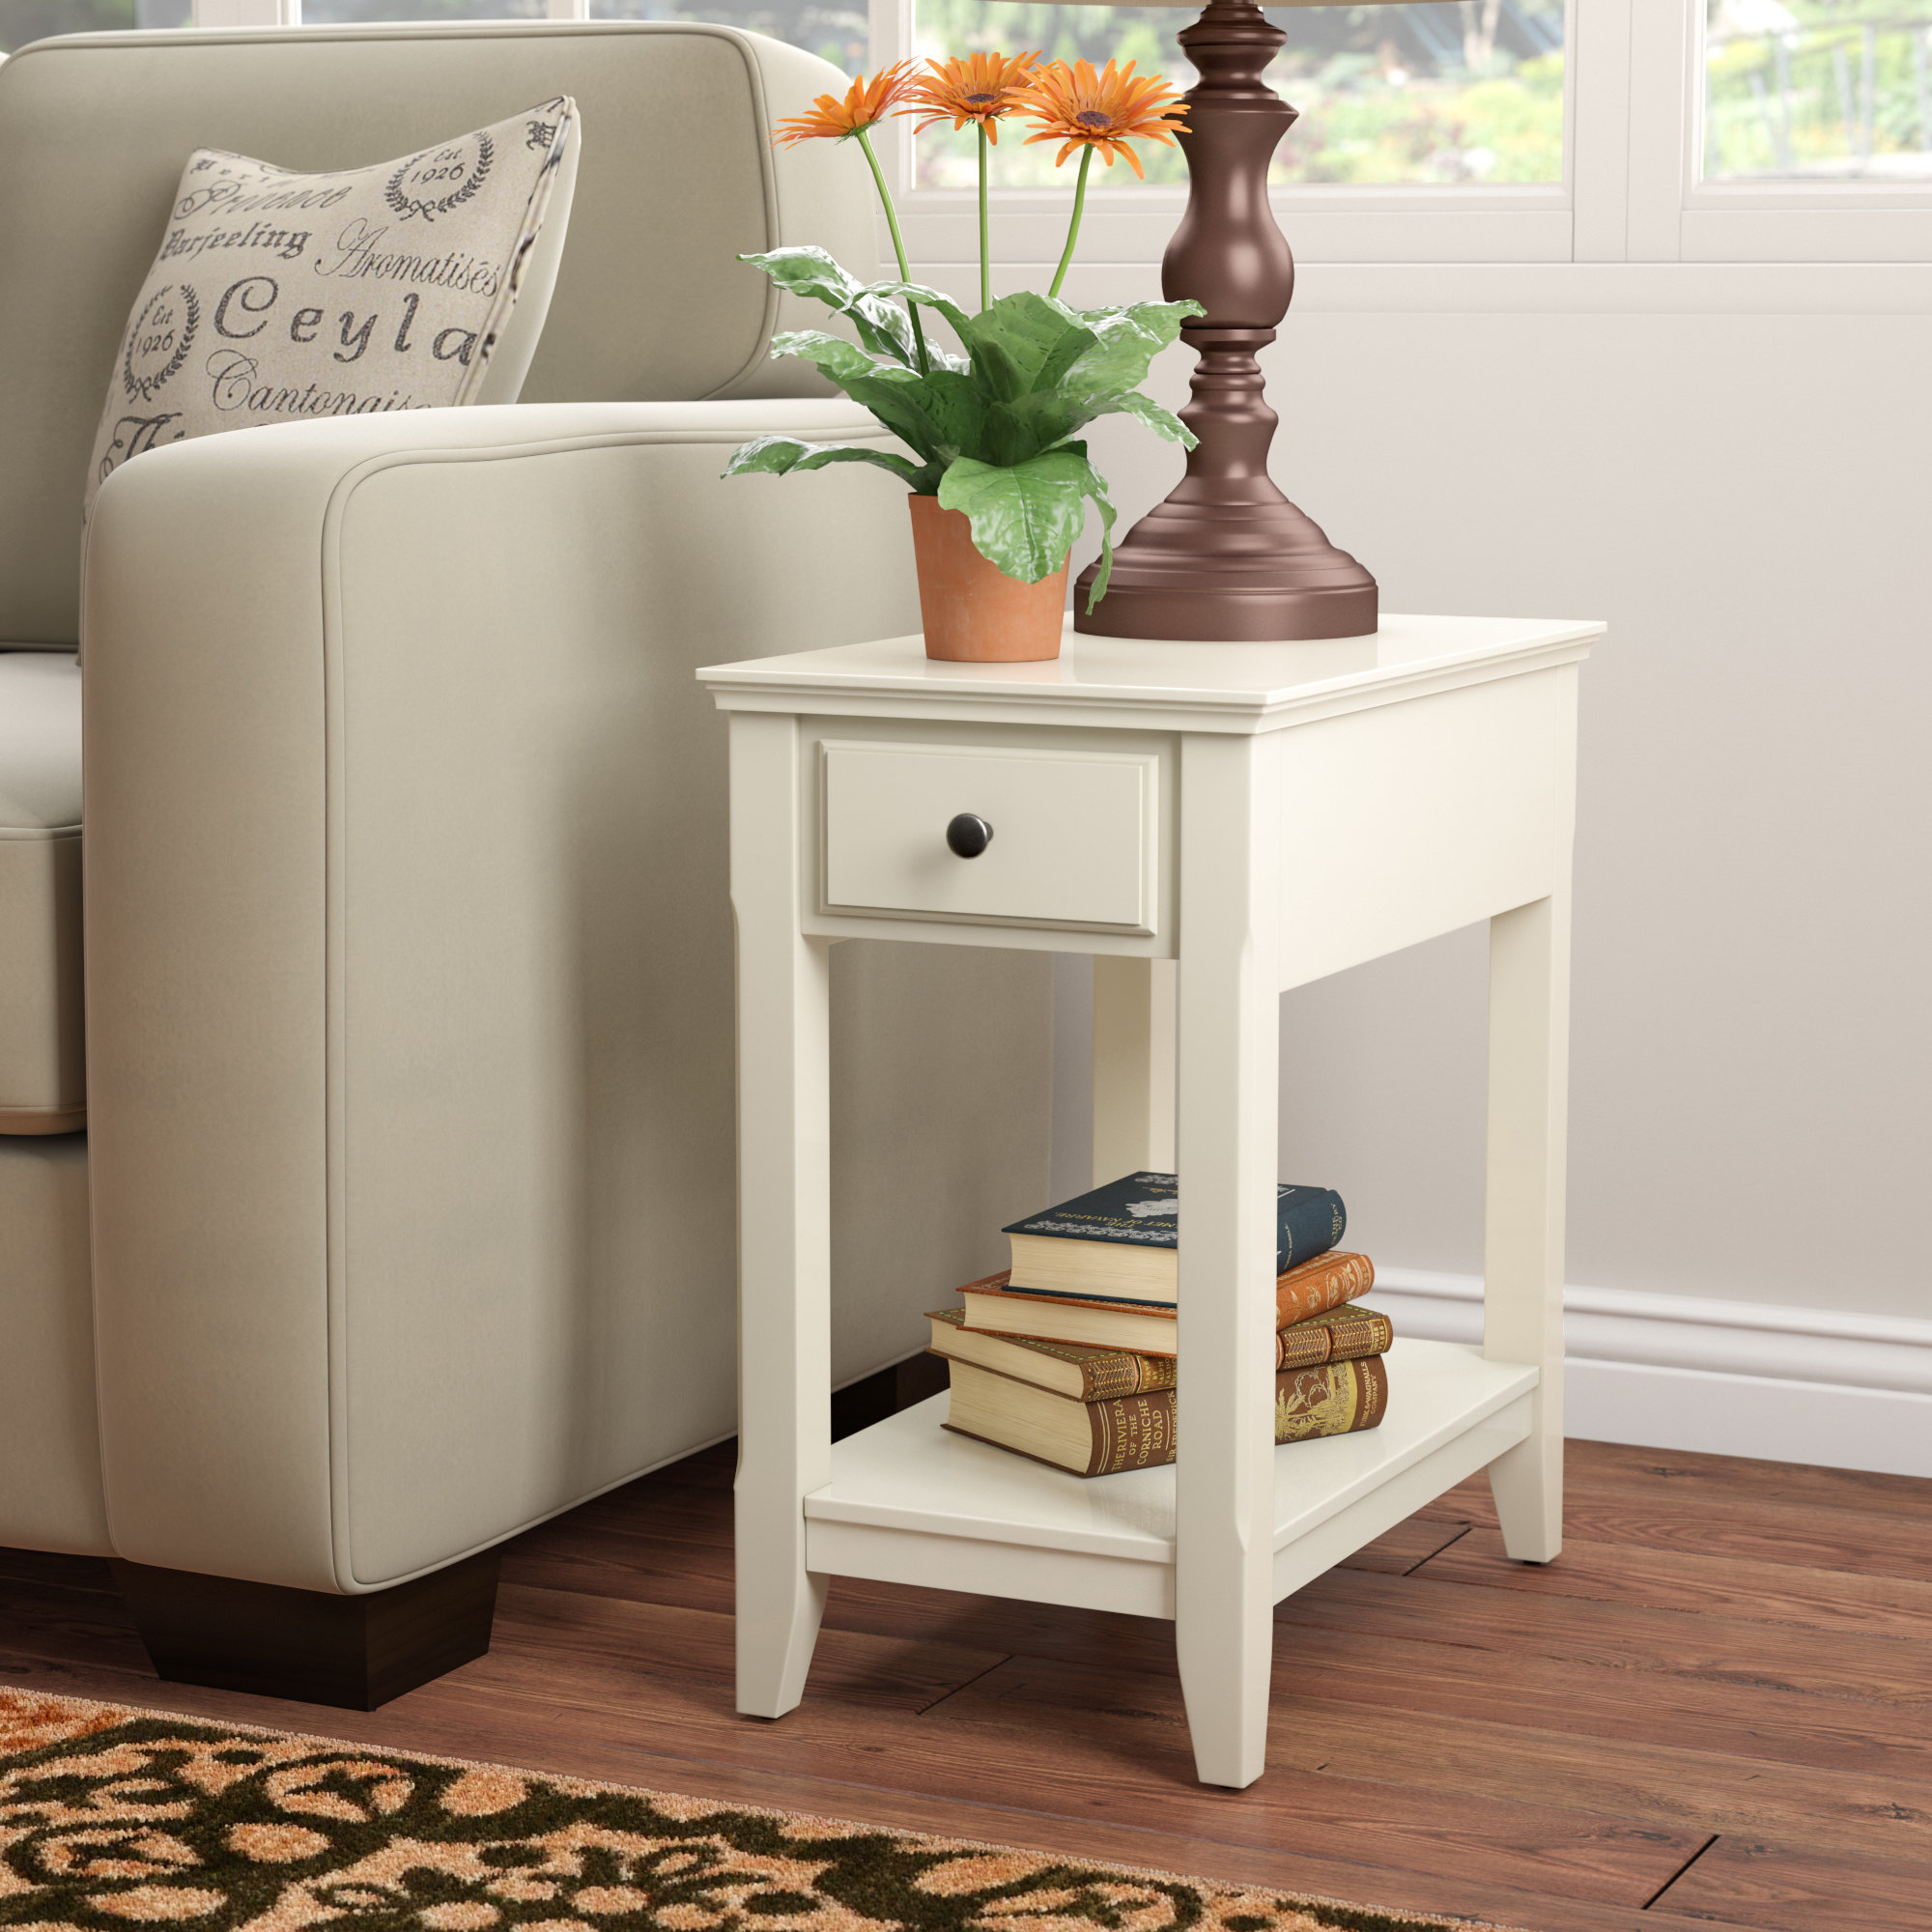 hillyard end table with storage reviews birch lane bedroom tables unique antique looking small bedside cottage style conversation area furniture wicker corner magnolia designs